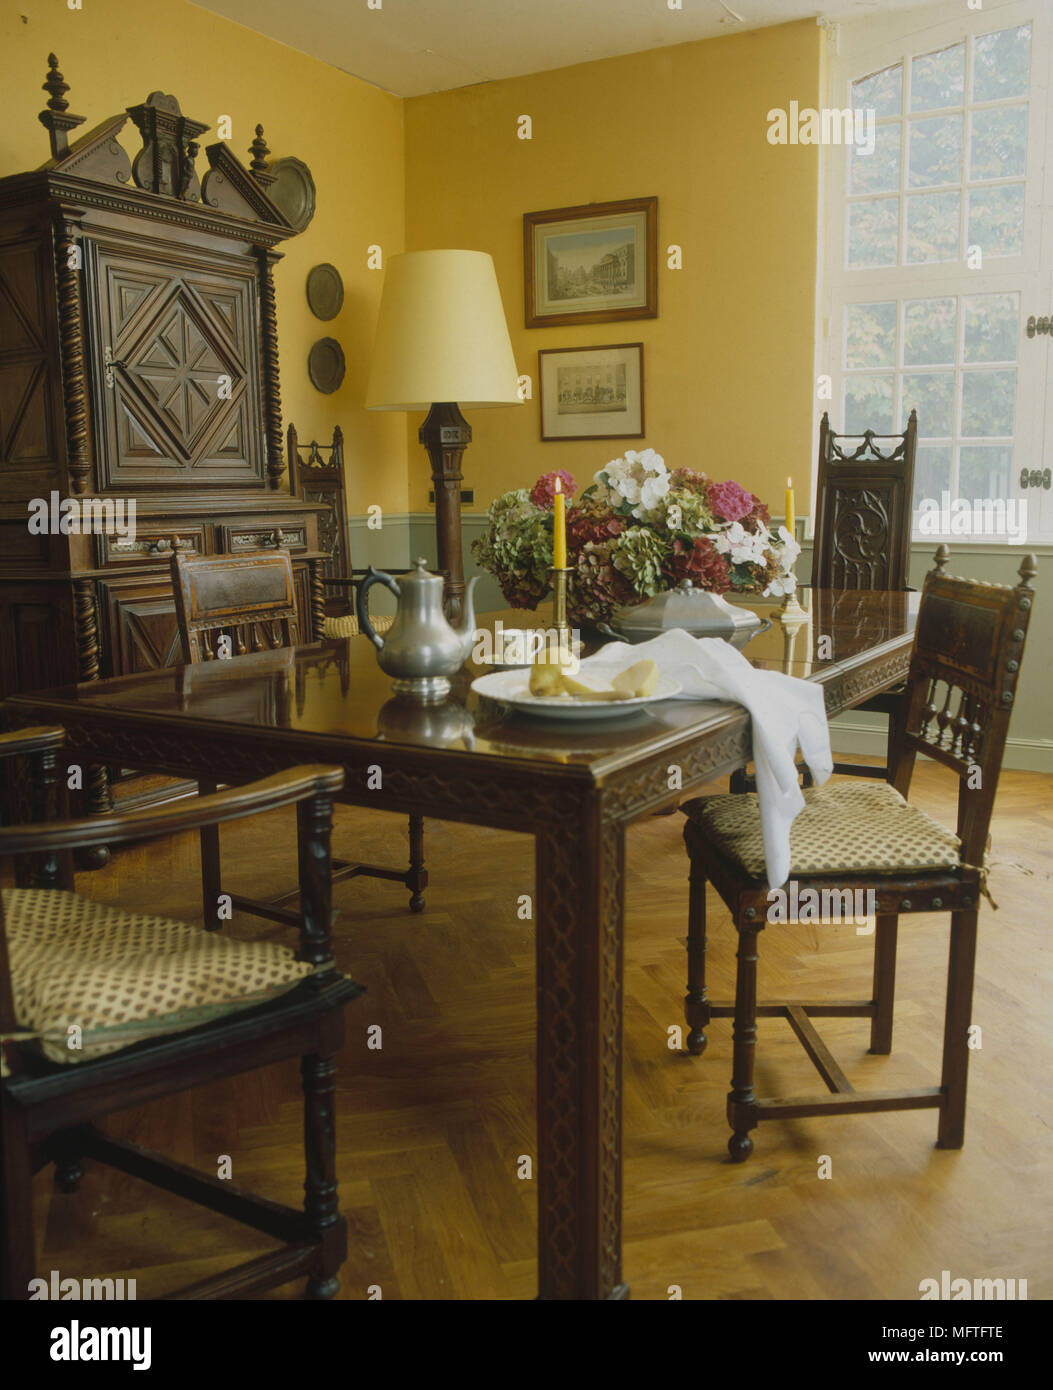 Traditional Dining Room Yellow And Pale Green Walls Table Chairs Cushions Ornate Carved Side Unit Interiors Rooms Colour Standard Lamp Lampshade Fram